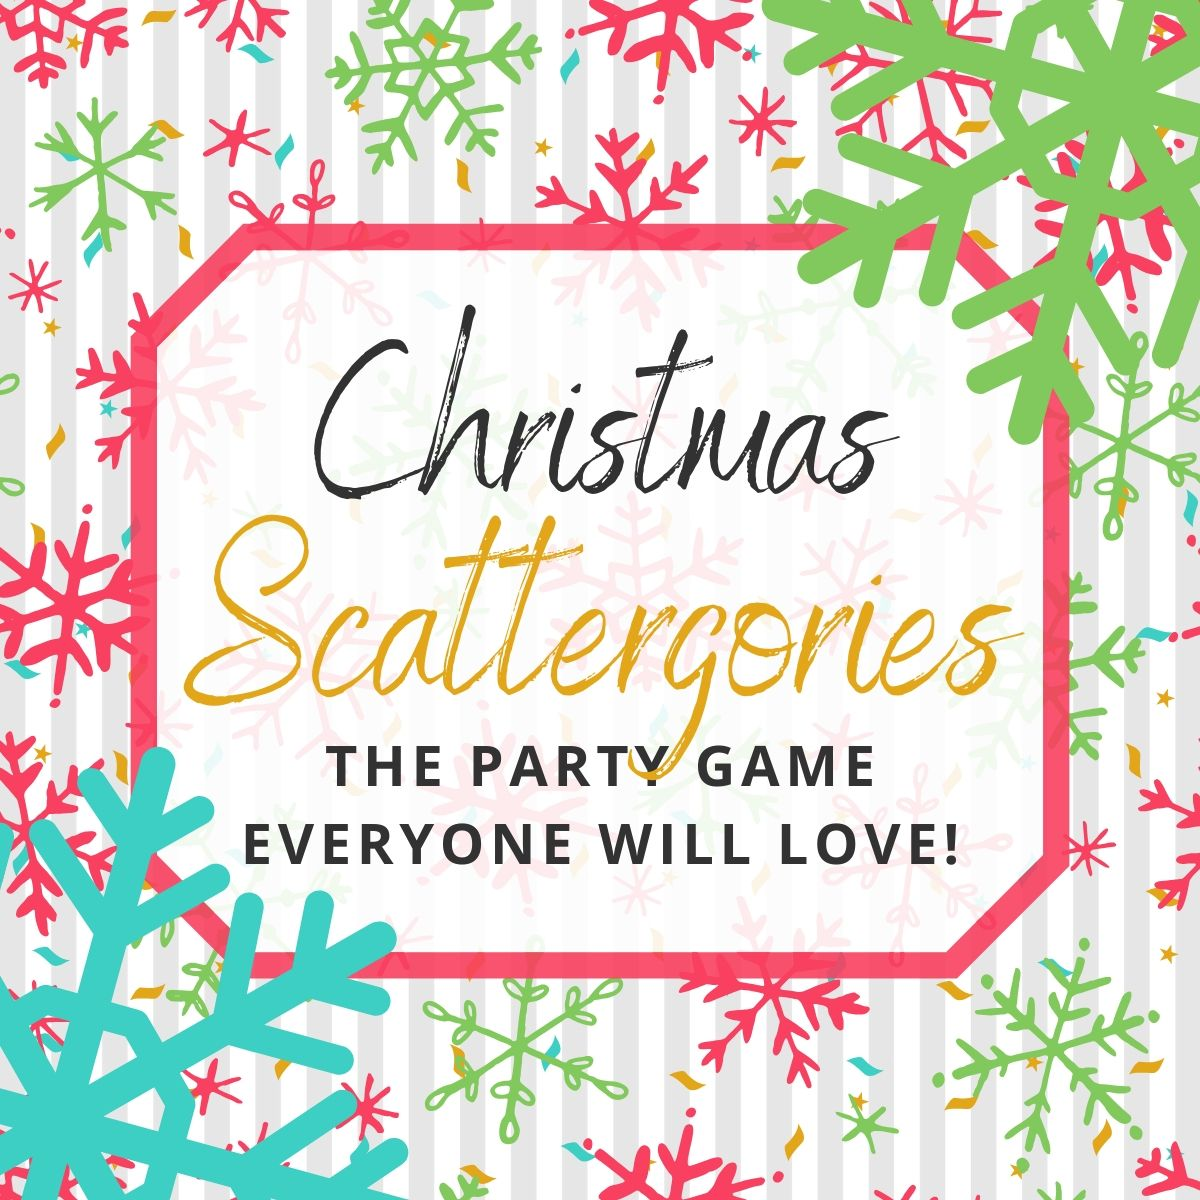 Christmas Scattergories Your Family Will Love Playing Free Printables